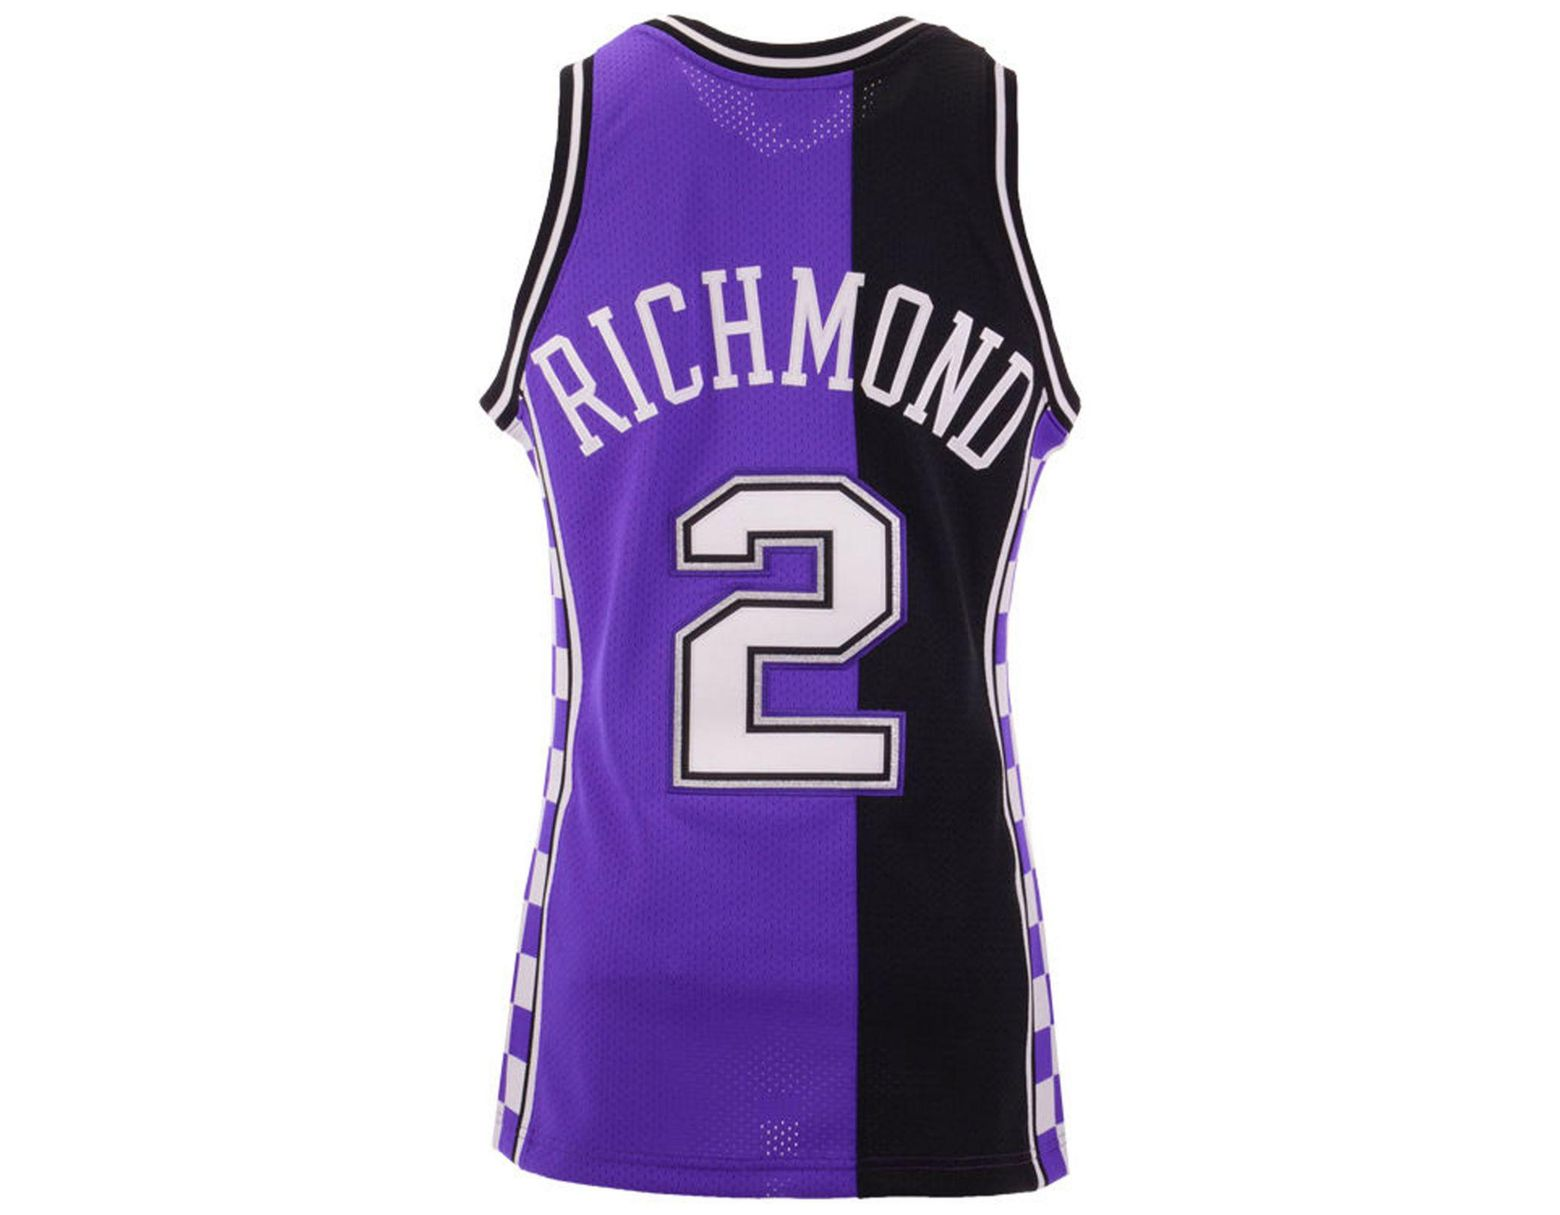 64a47df9354 Lyst - Mitchell   Ness Mitch Richmond Sacramento Kings Authentic Jersey in  Purple for Men